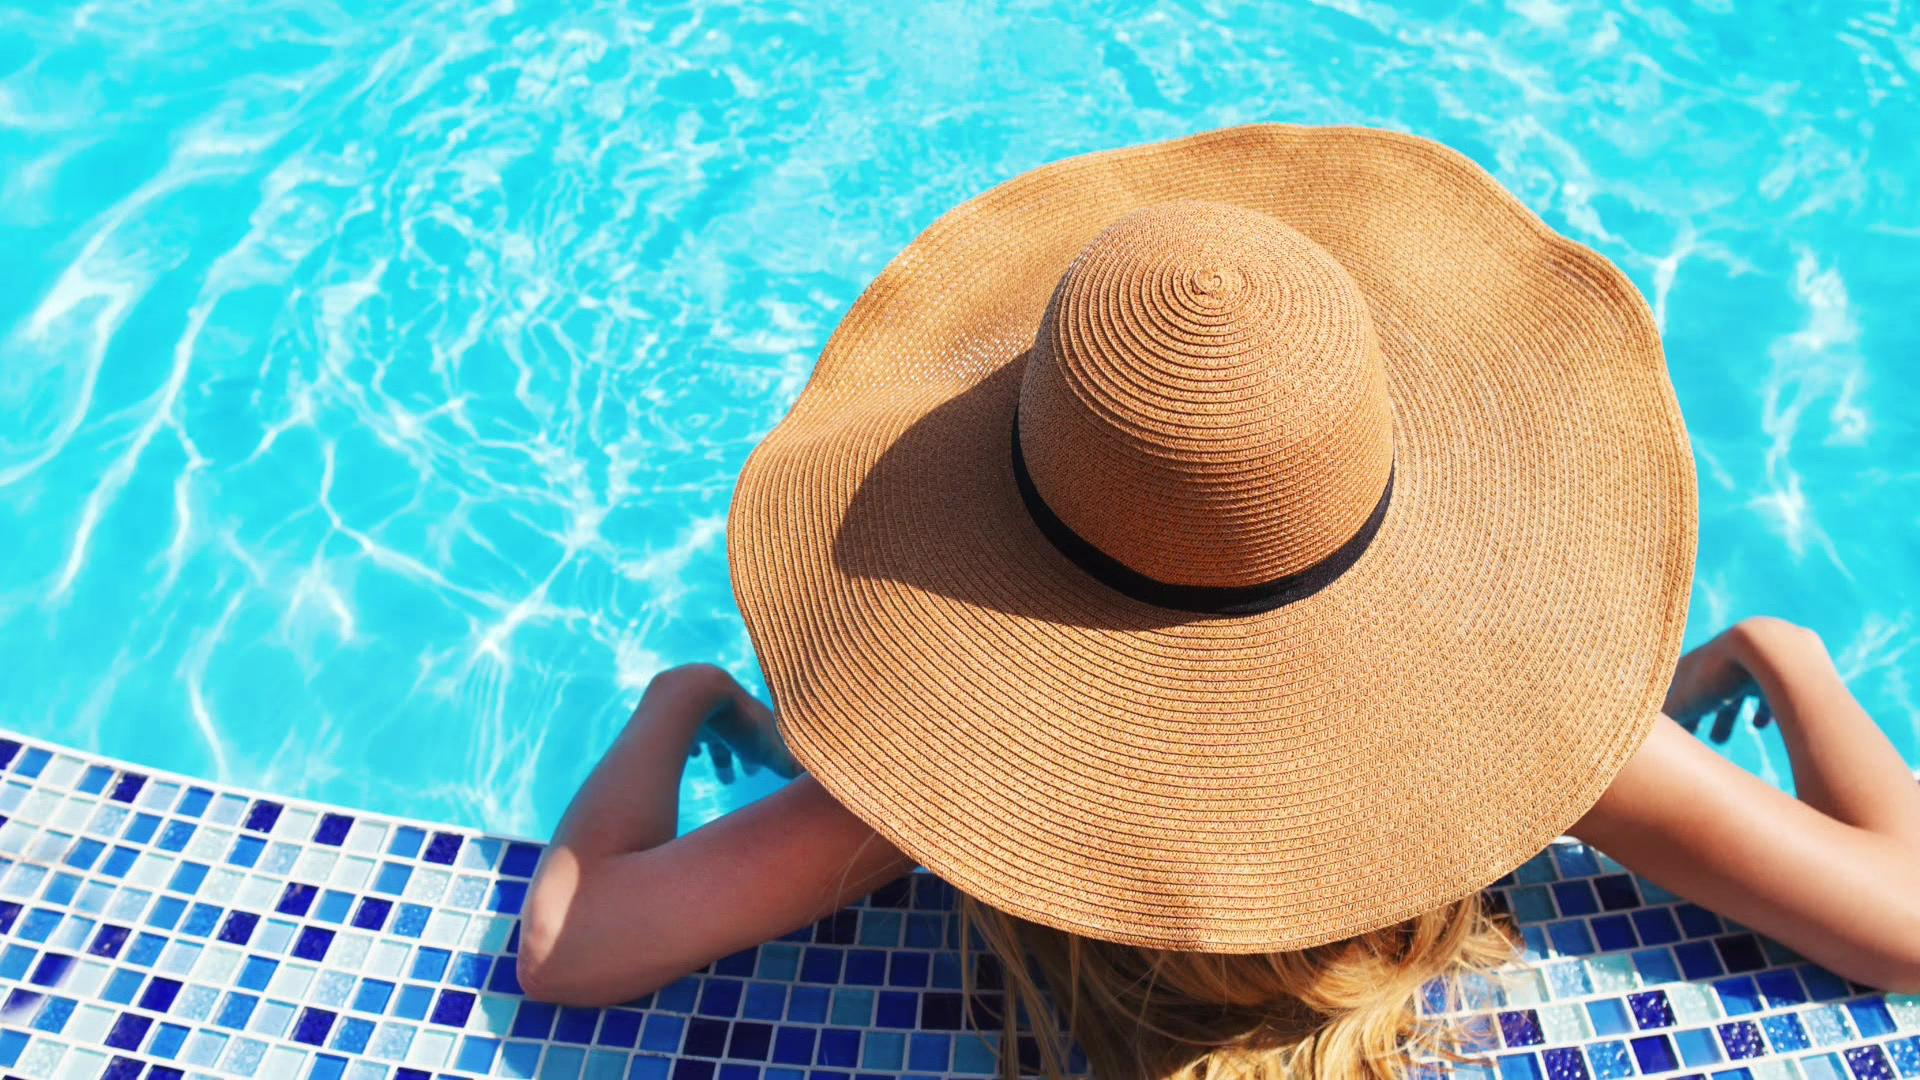 Memorial Day travel do's and don'ts